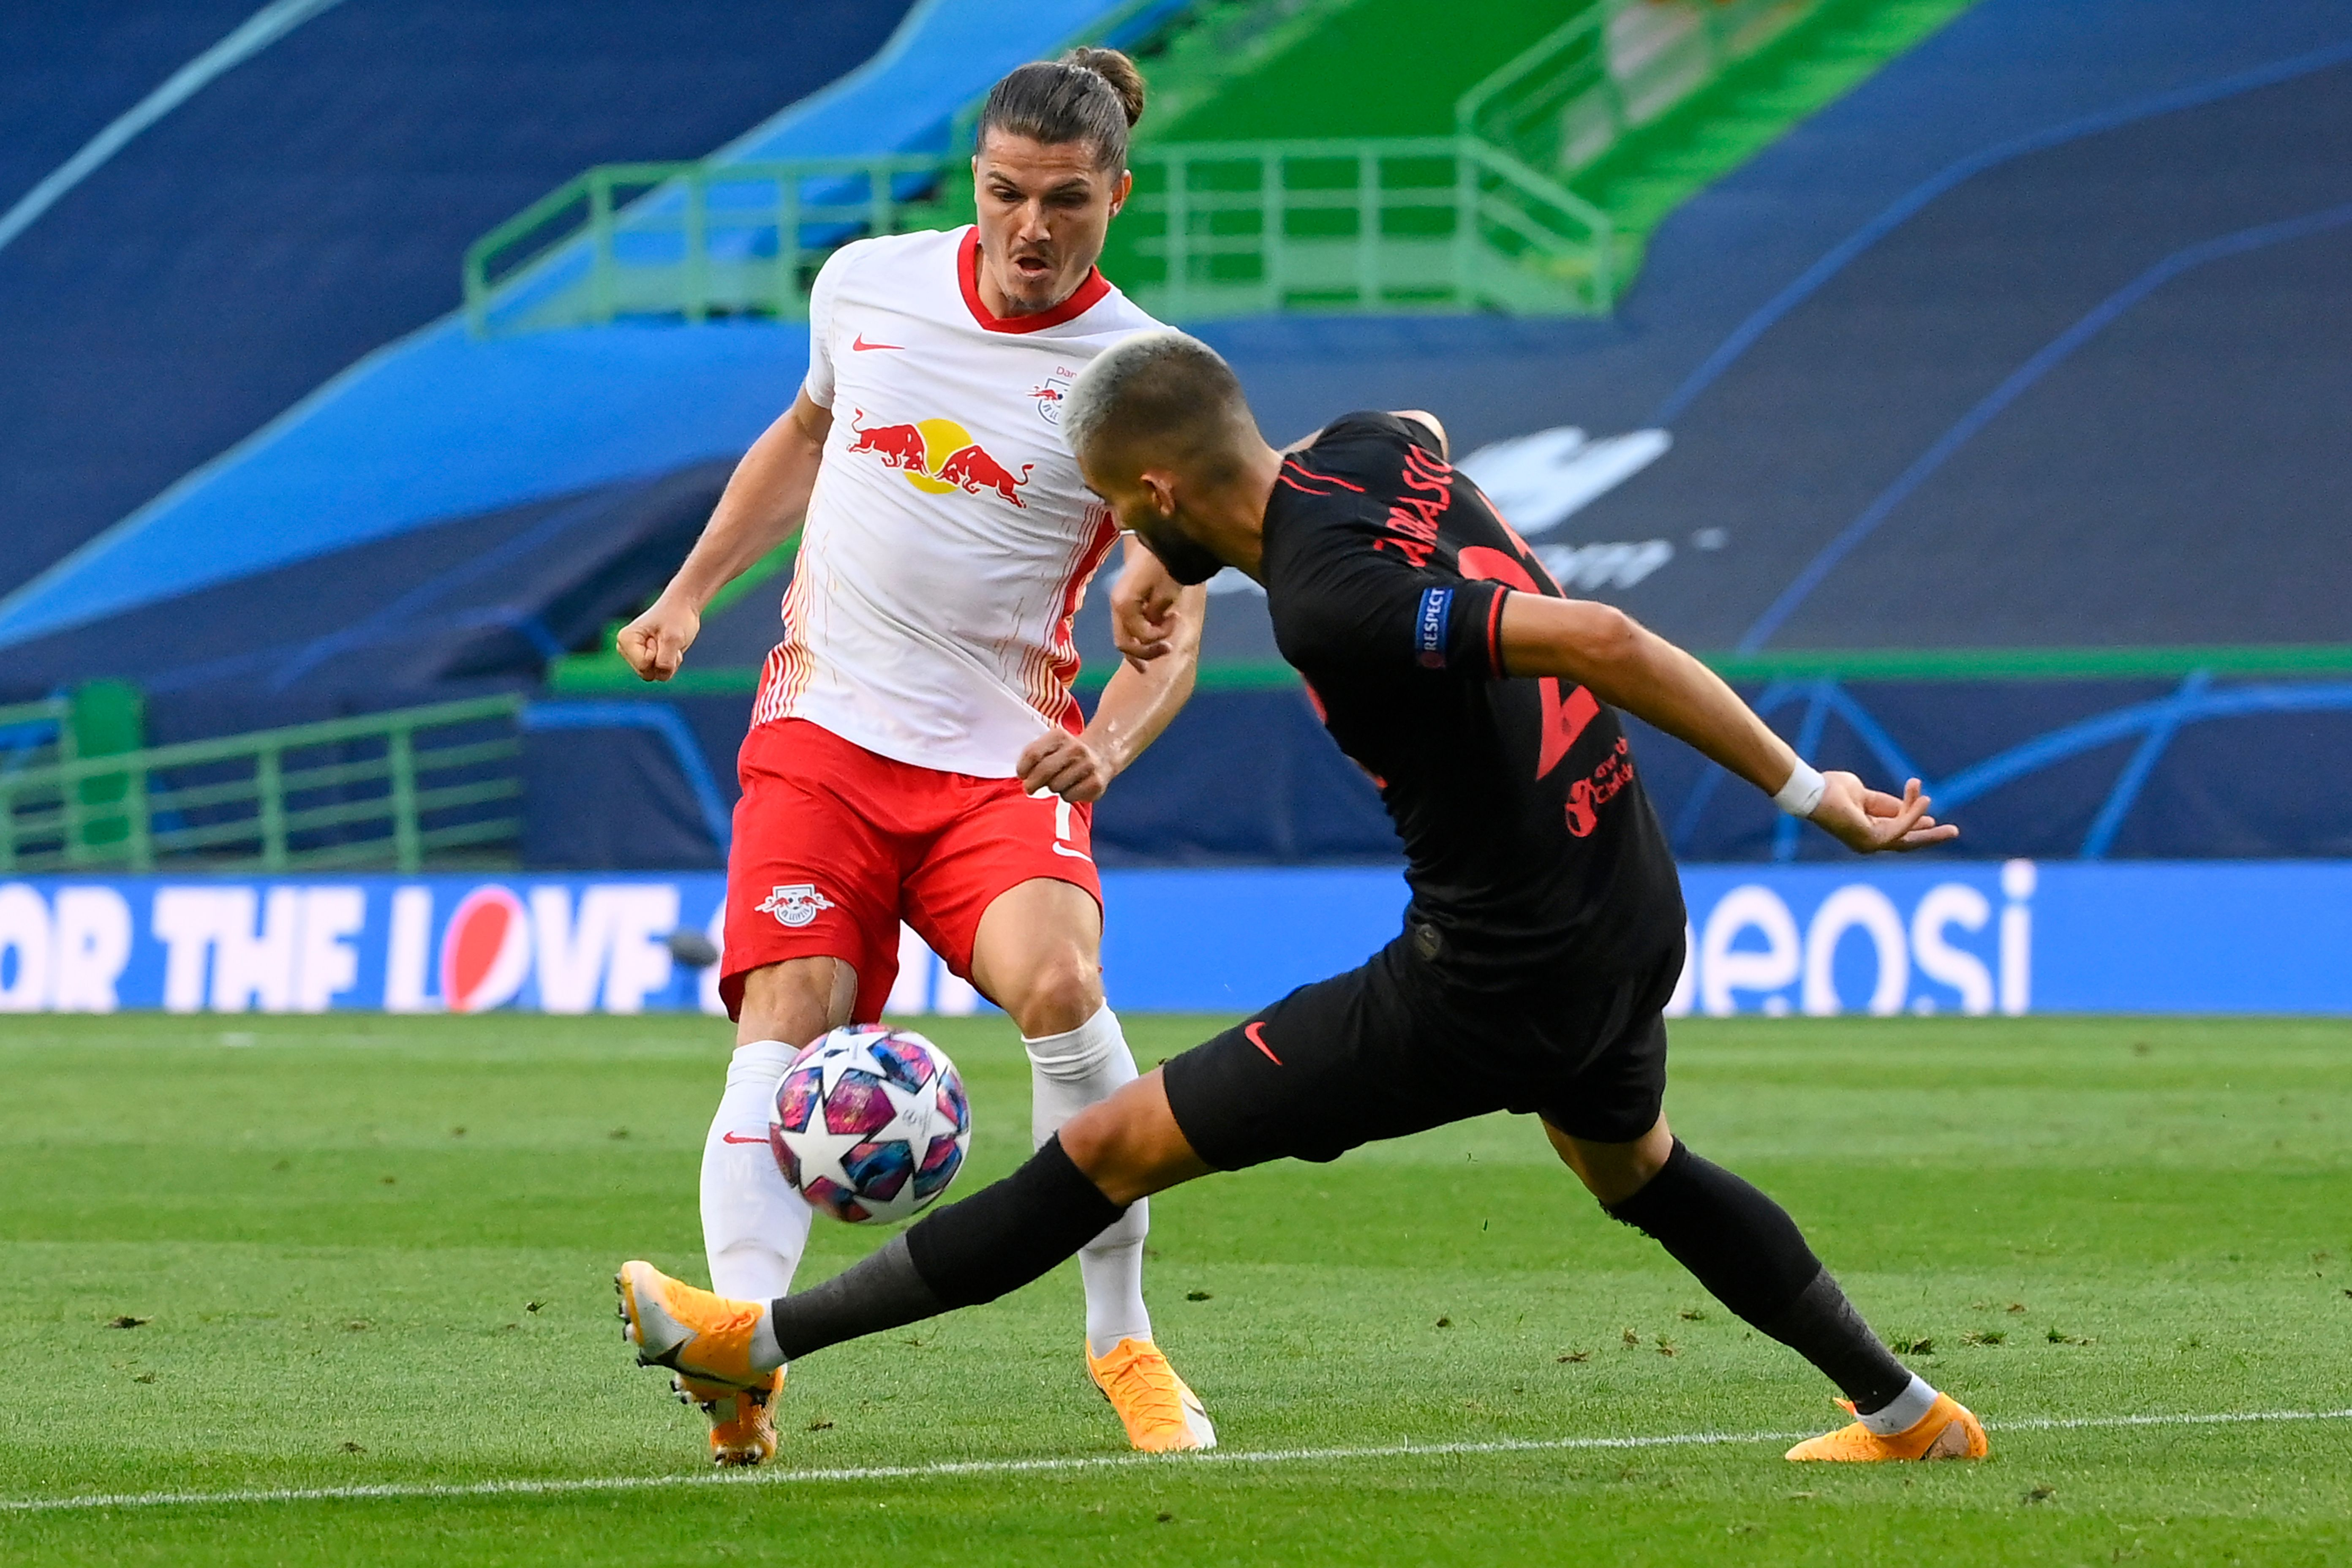 Rb Leipzig Midfielder Discusses What He Expects From Psg Ahead Of Semi Finals Matchup Psg Talk